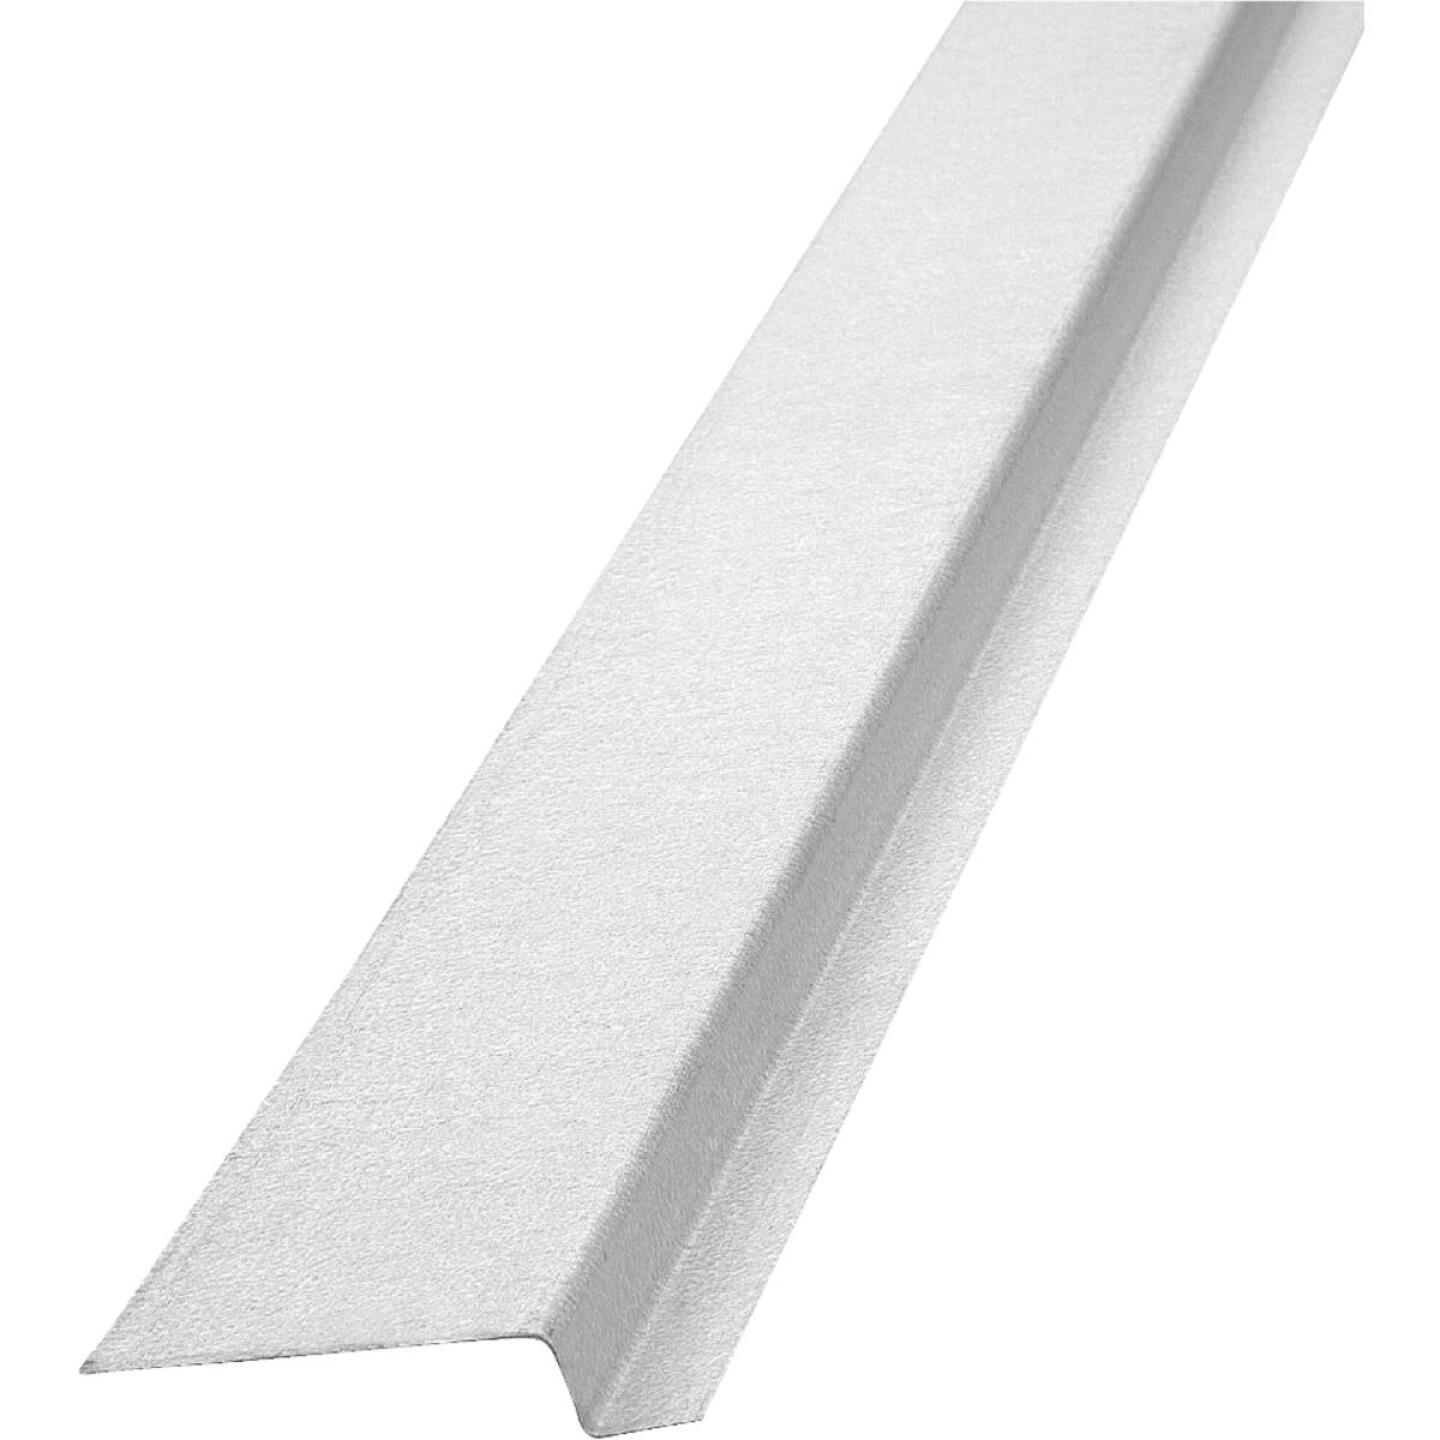 NorWesco 3/8 In. x 3/8 In. x 2-1/4 In. x 10 Ft. Mill Galvanized Ply Edge Z-Style Flashing Image 1